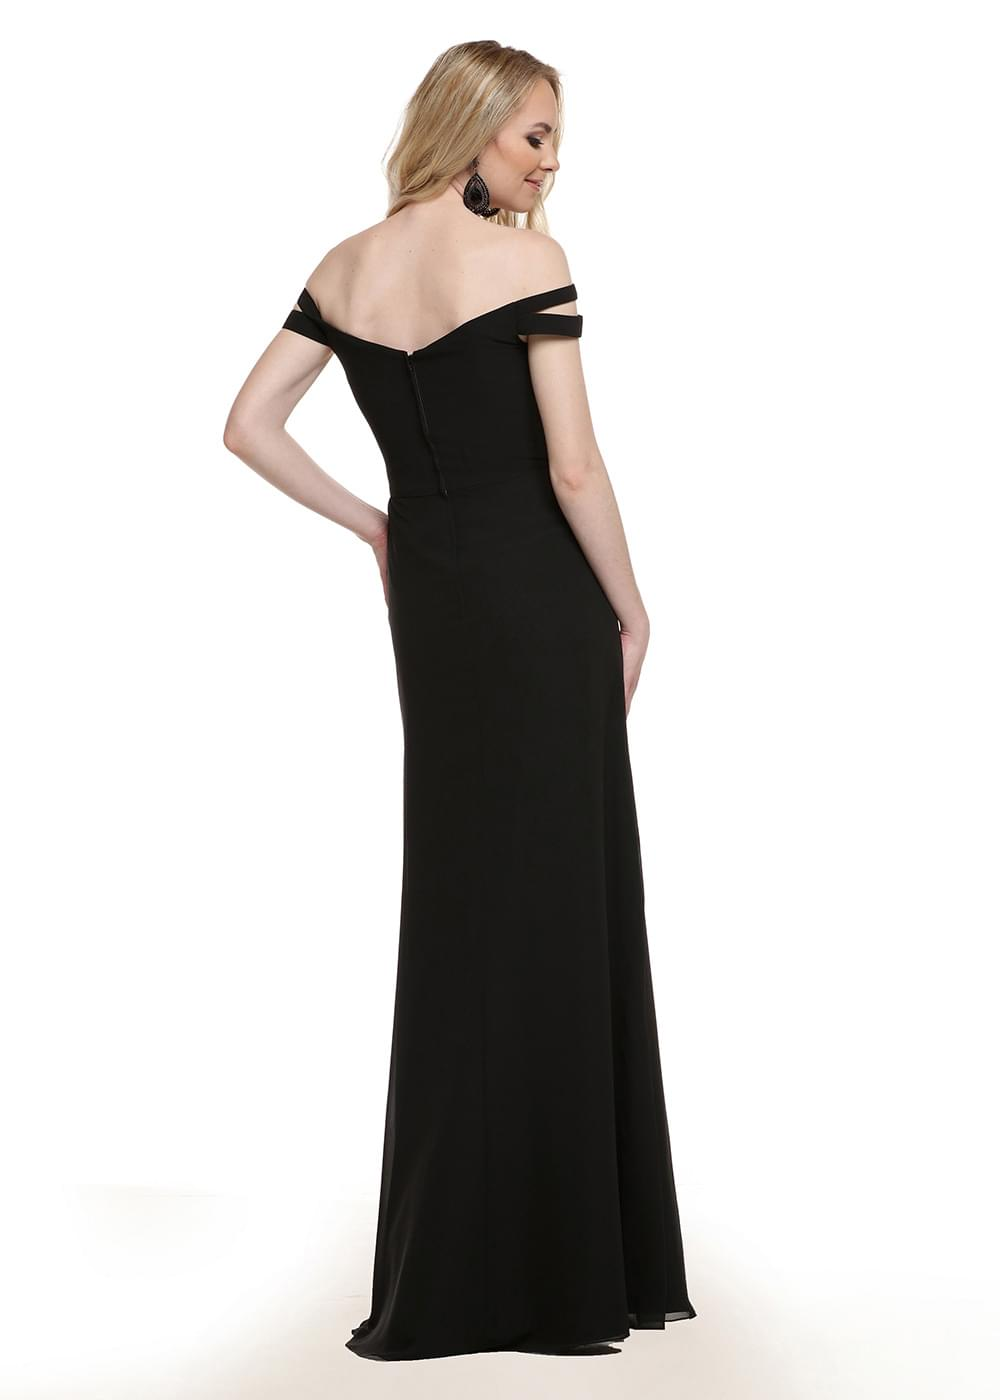 TH-80133 Black Dresses By Ashdon